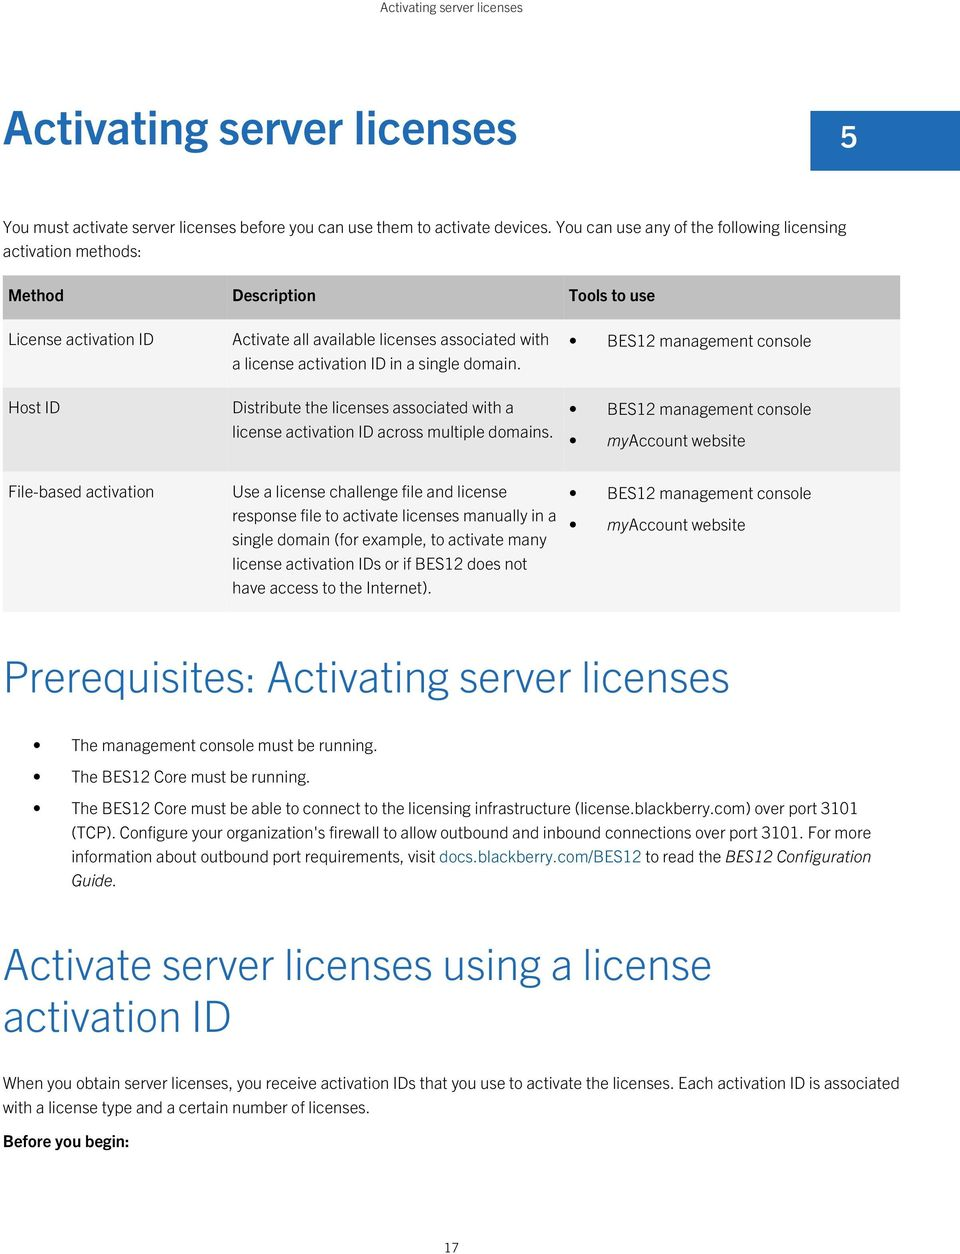 a single domain. Distribute the licenses associated with a license activation ID across multiple domains.